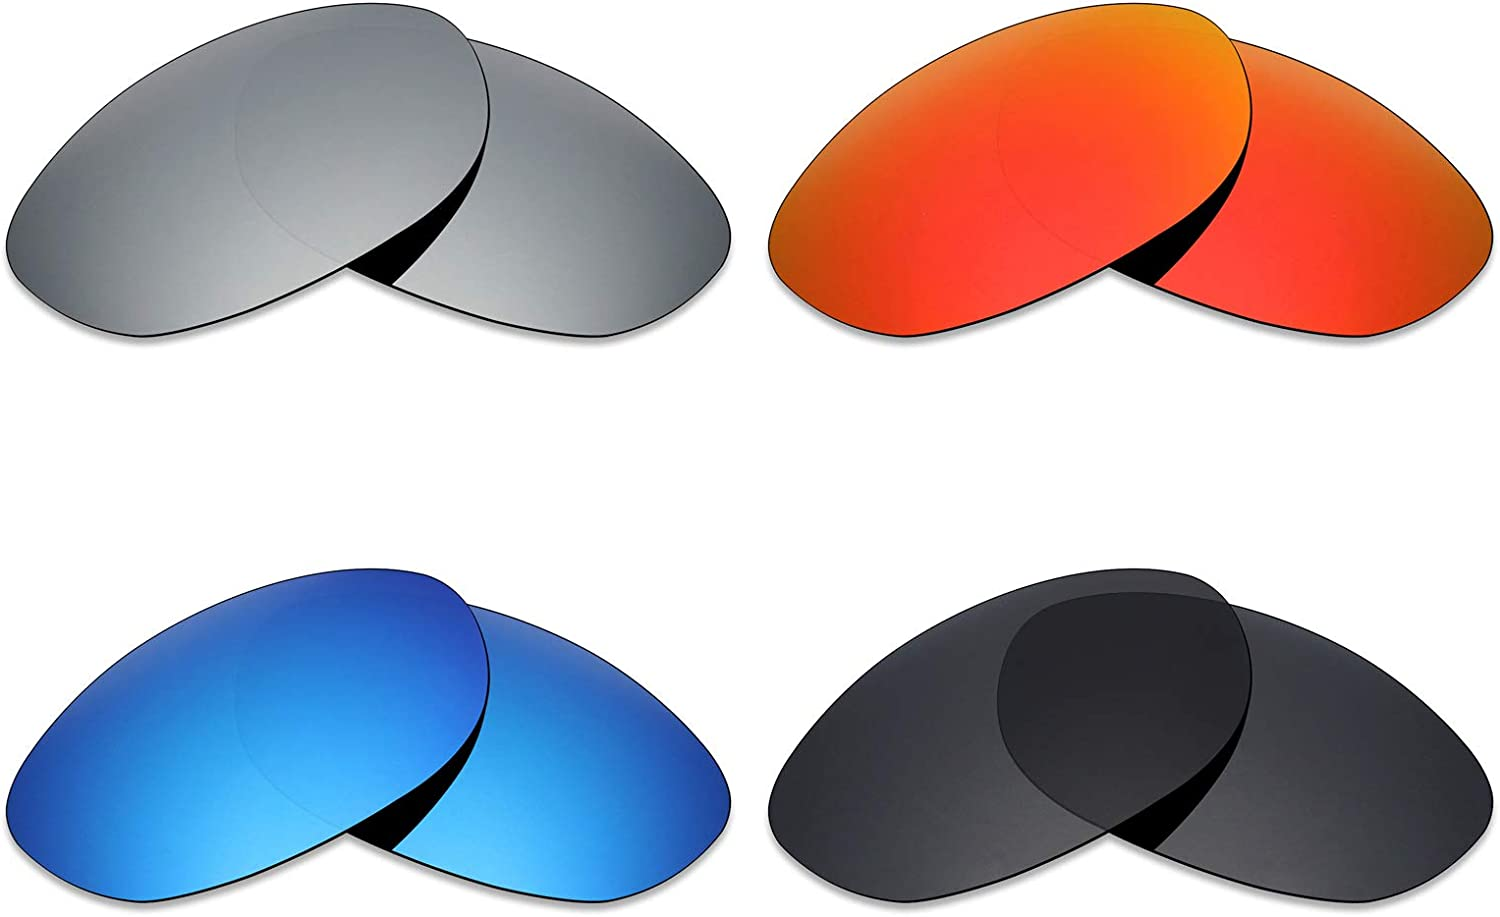 Mryok 4 Pair Polarized Replacement Lenses for Wiley X Airrage Sunglass  Stealth Black Fire Red Ice blueee Silver Titanium